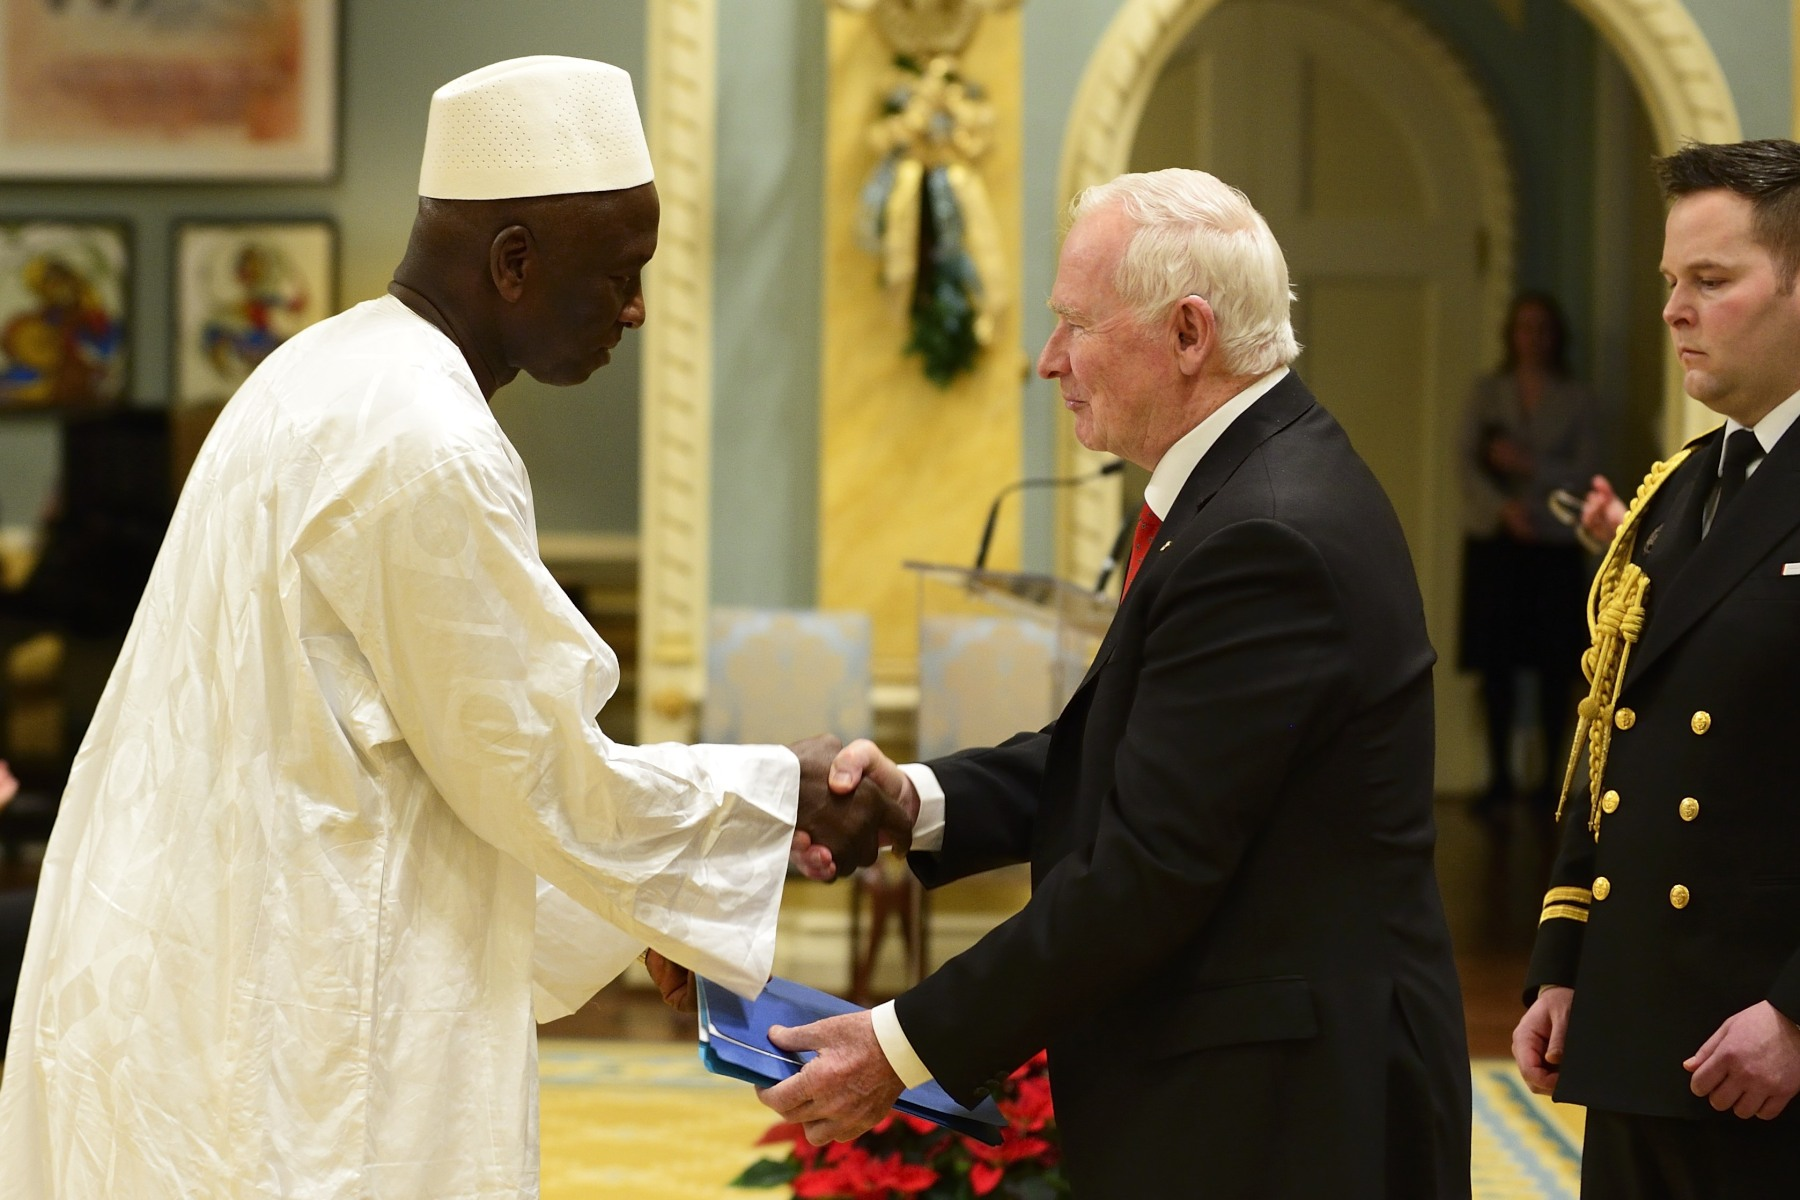 The Governor General then received the letters of credence of His Excellency Saramady Touré, Ambassador of the Republic of Guinea.